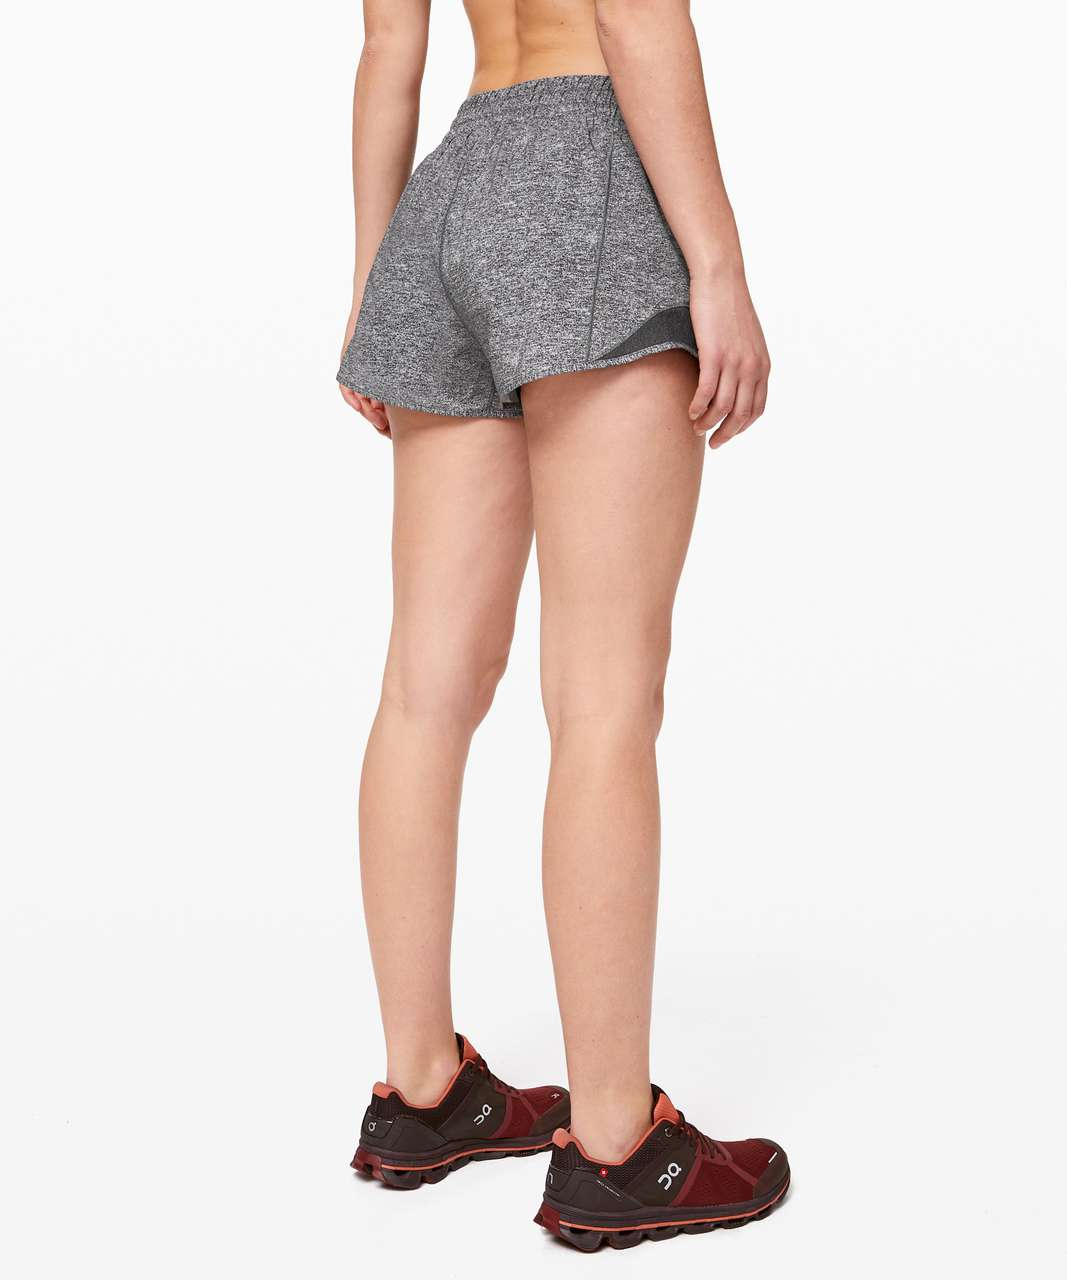 "Lululemon Hotty Hot Short *High-Rise 2.5"" - Heather Lux Multi Black / Heathered Black"